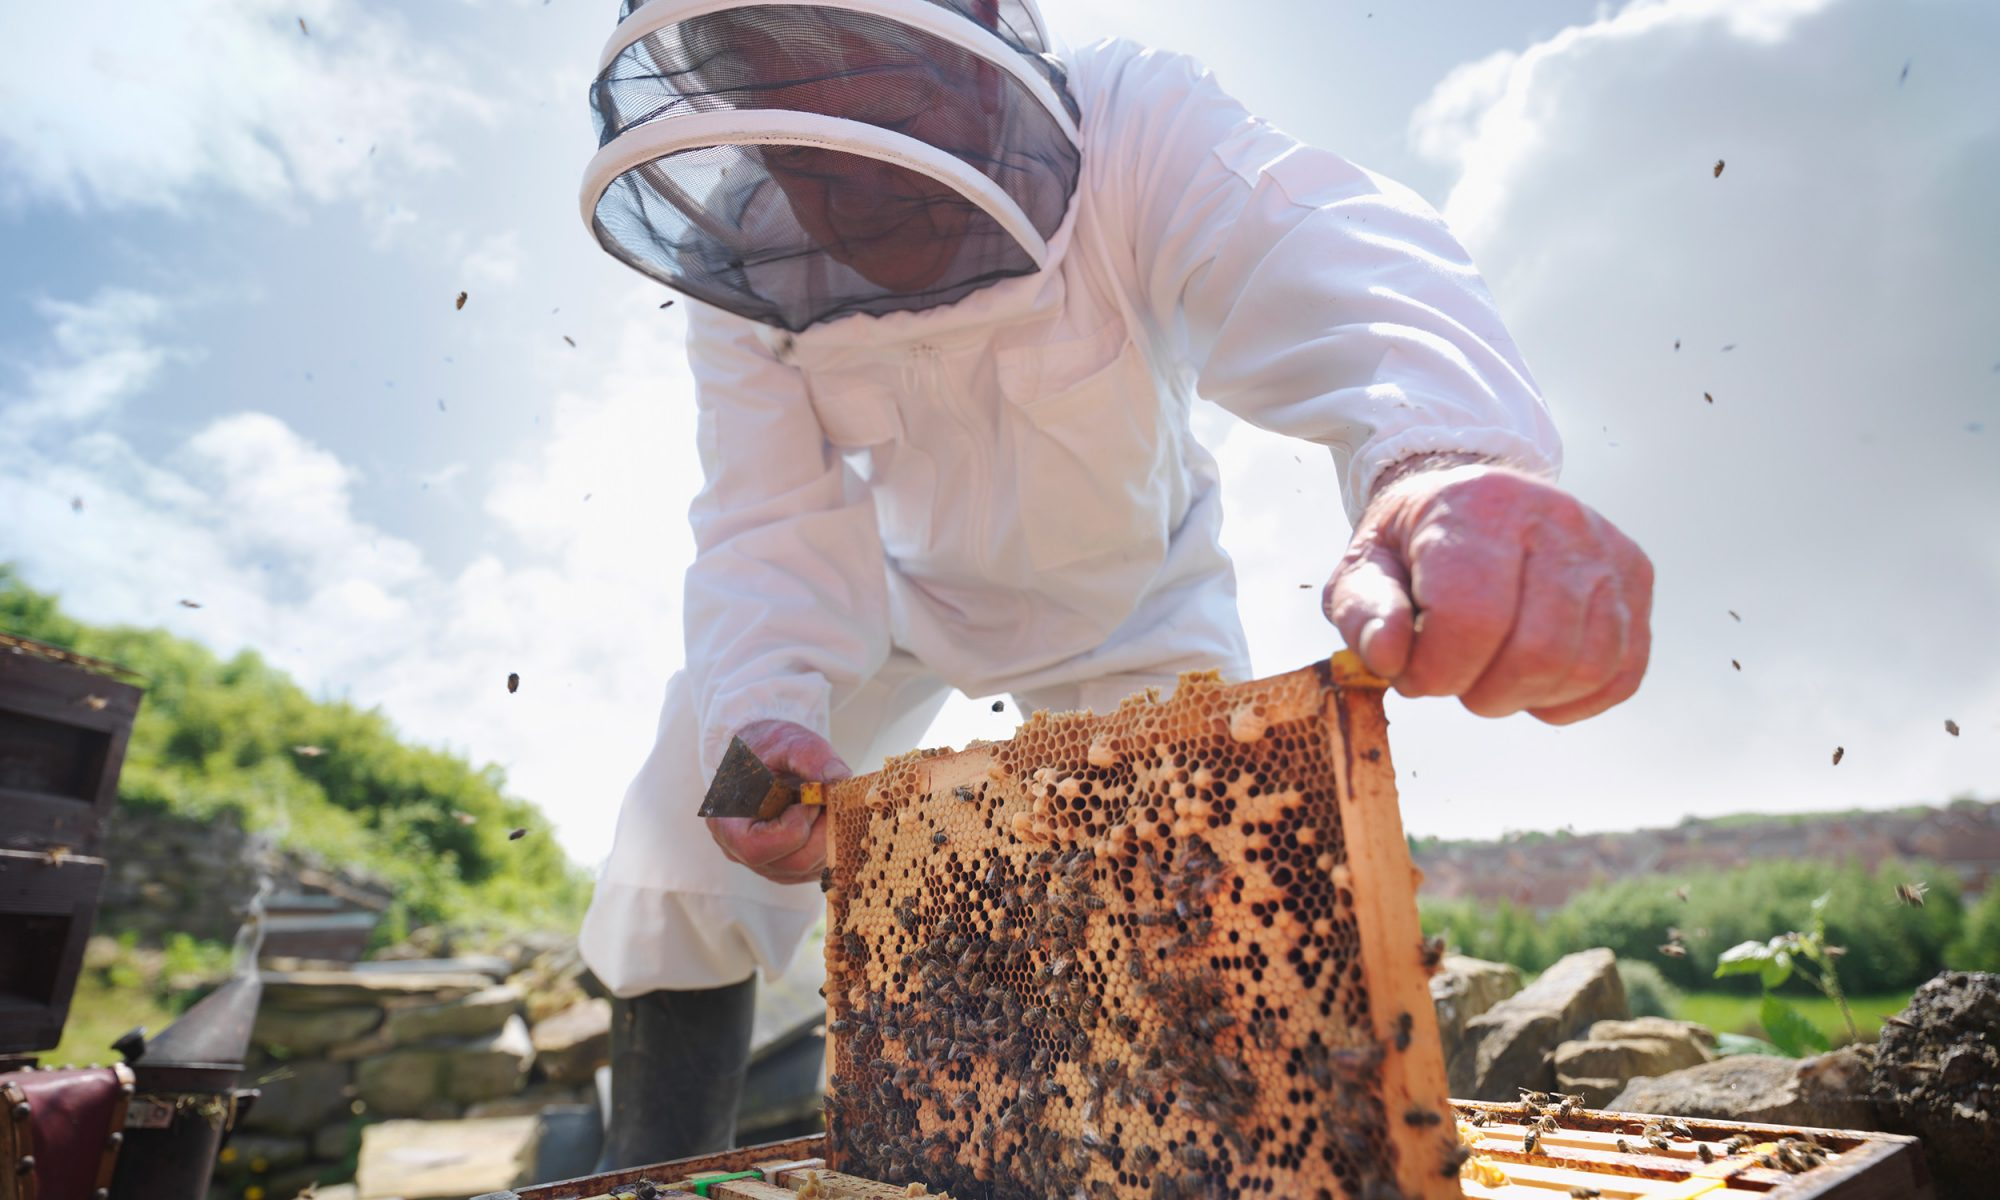 EC: Thief Who Stole Beehives Worth $1 Million Has Been Arrested